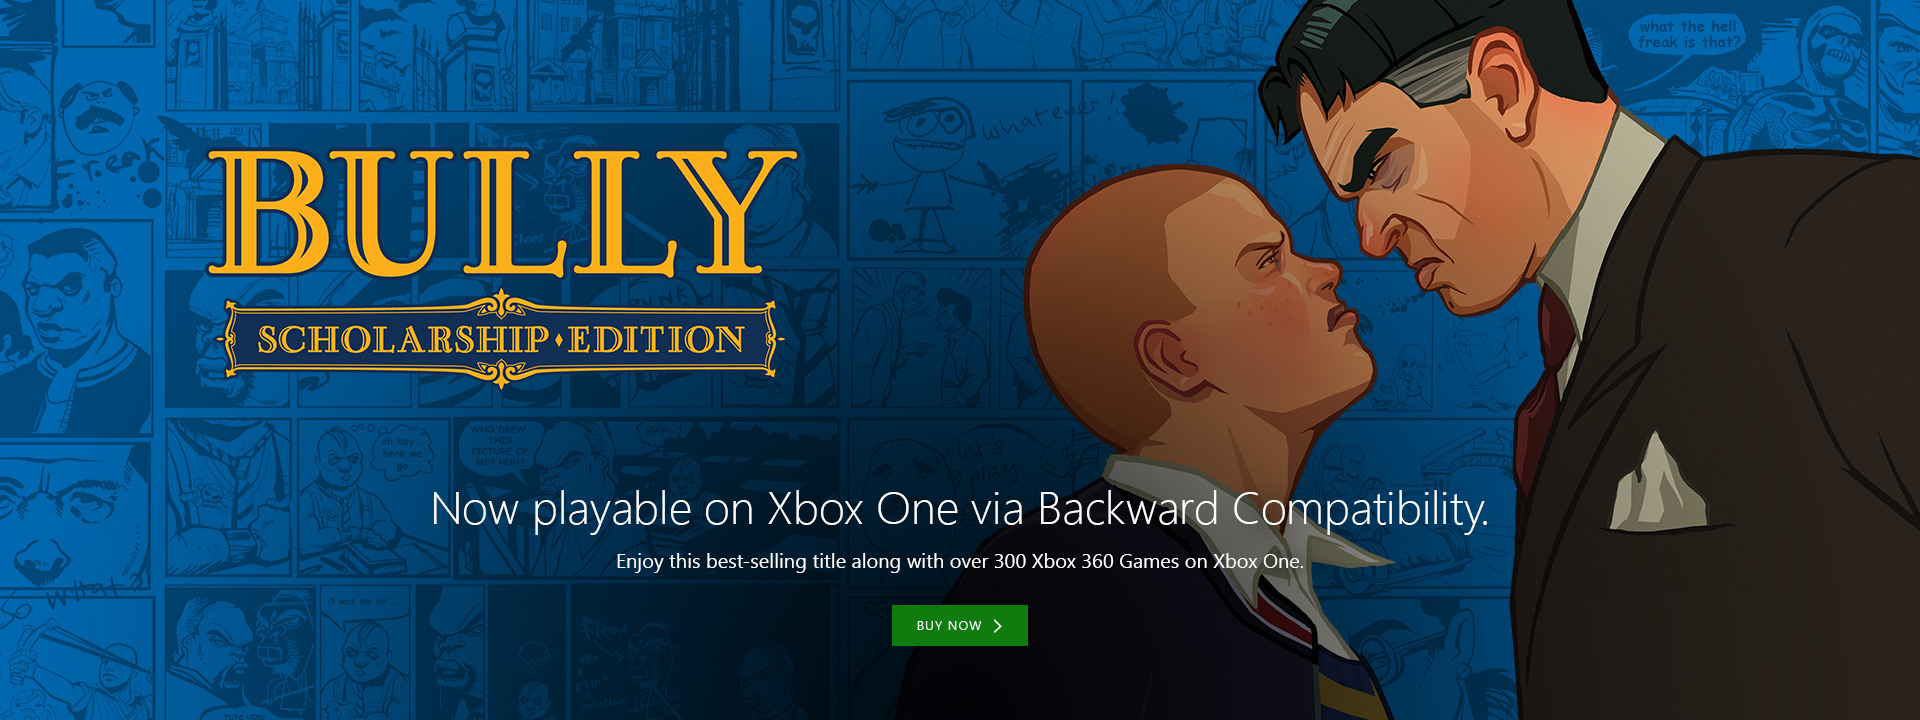 bully scholarship edition now playable on Back Compat